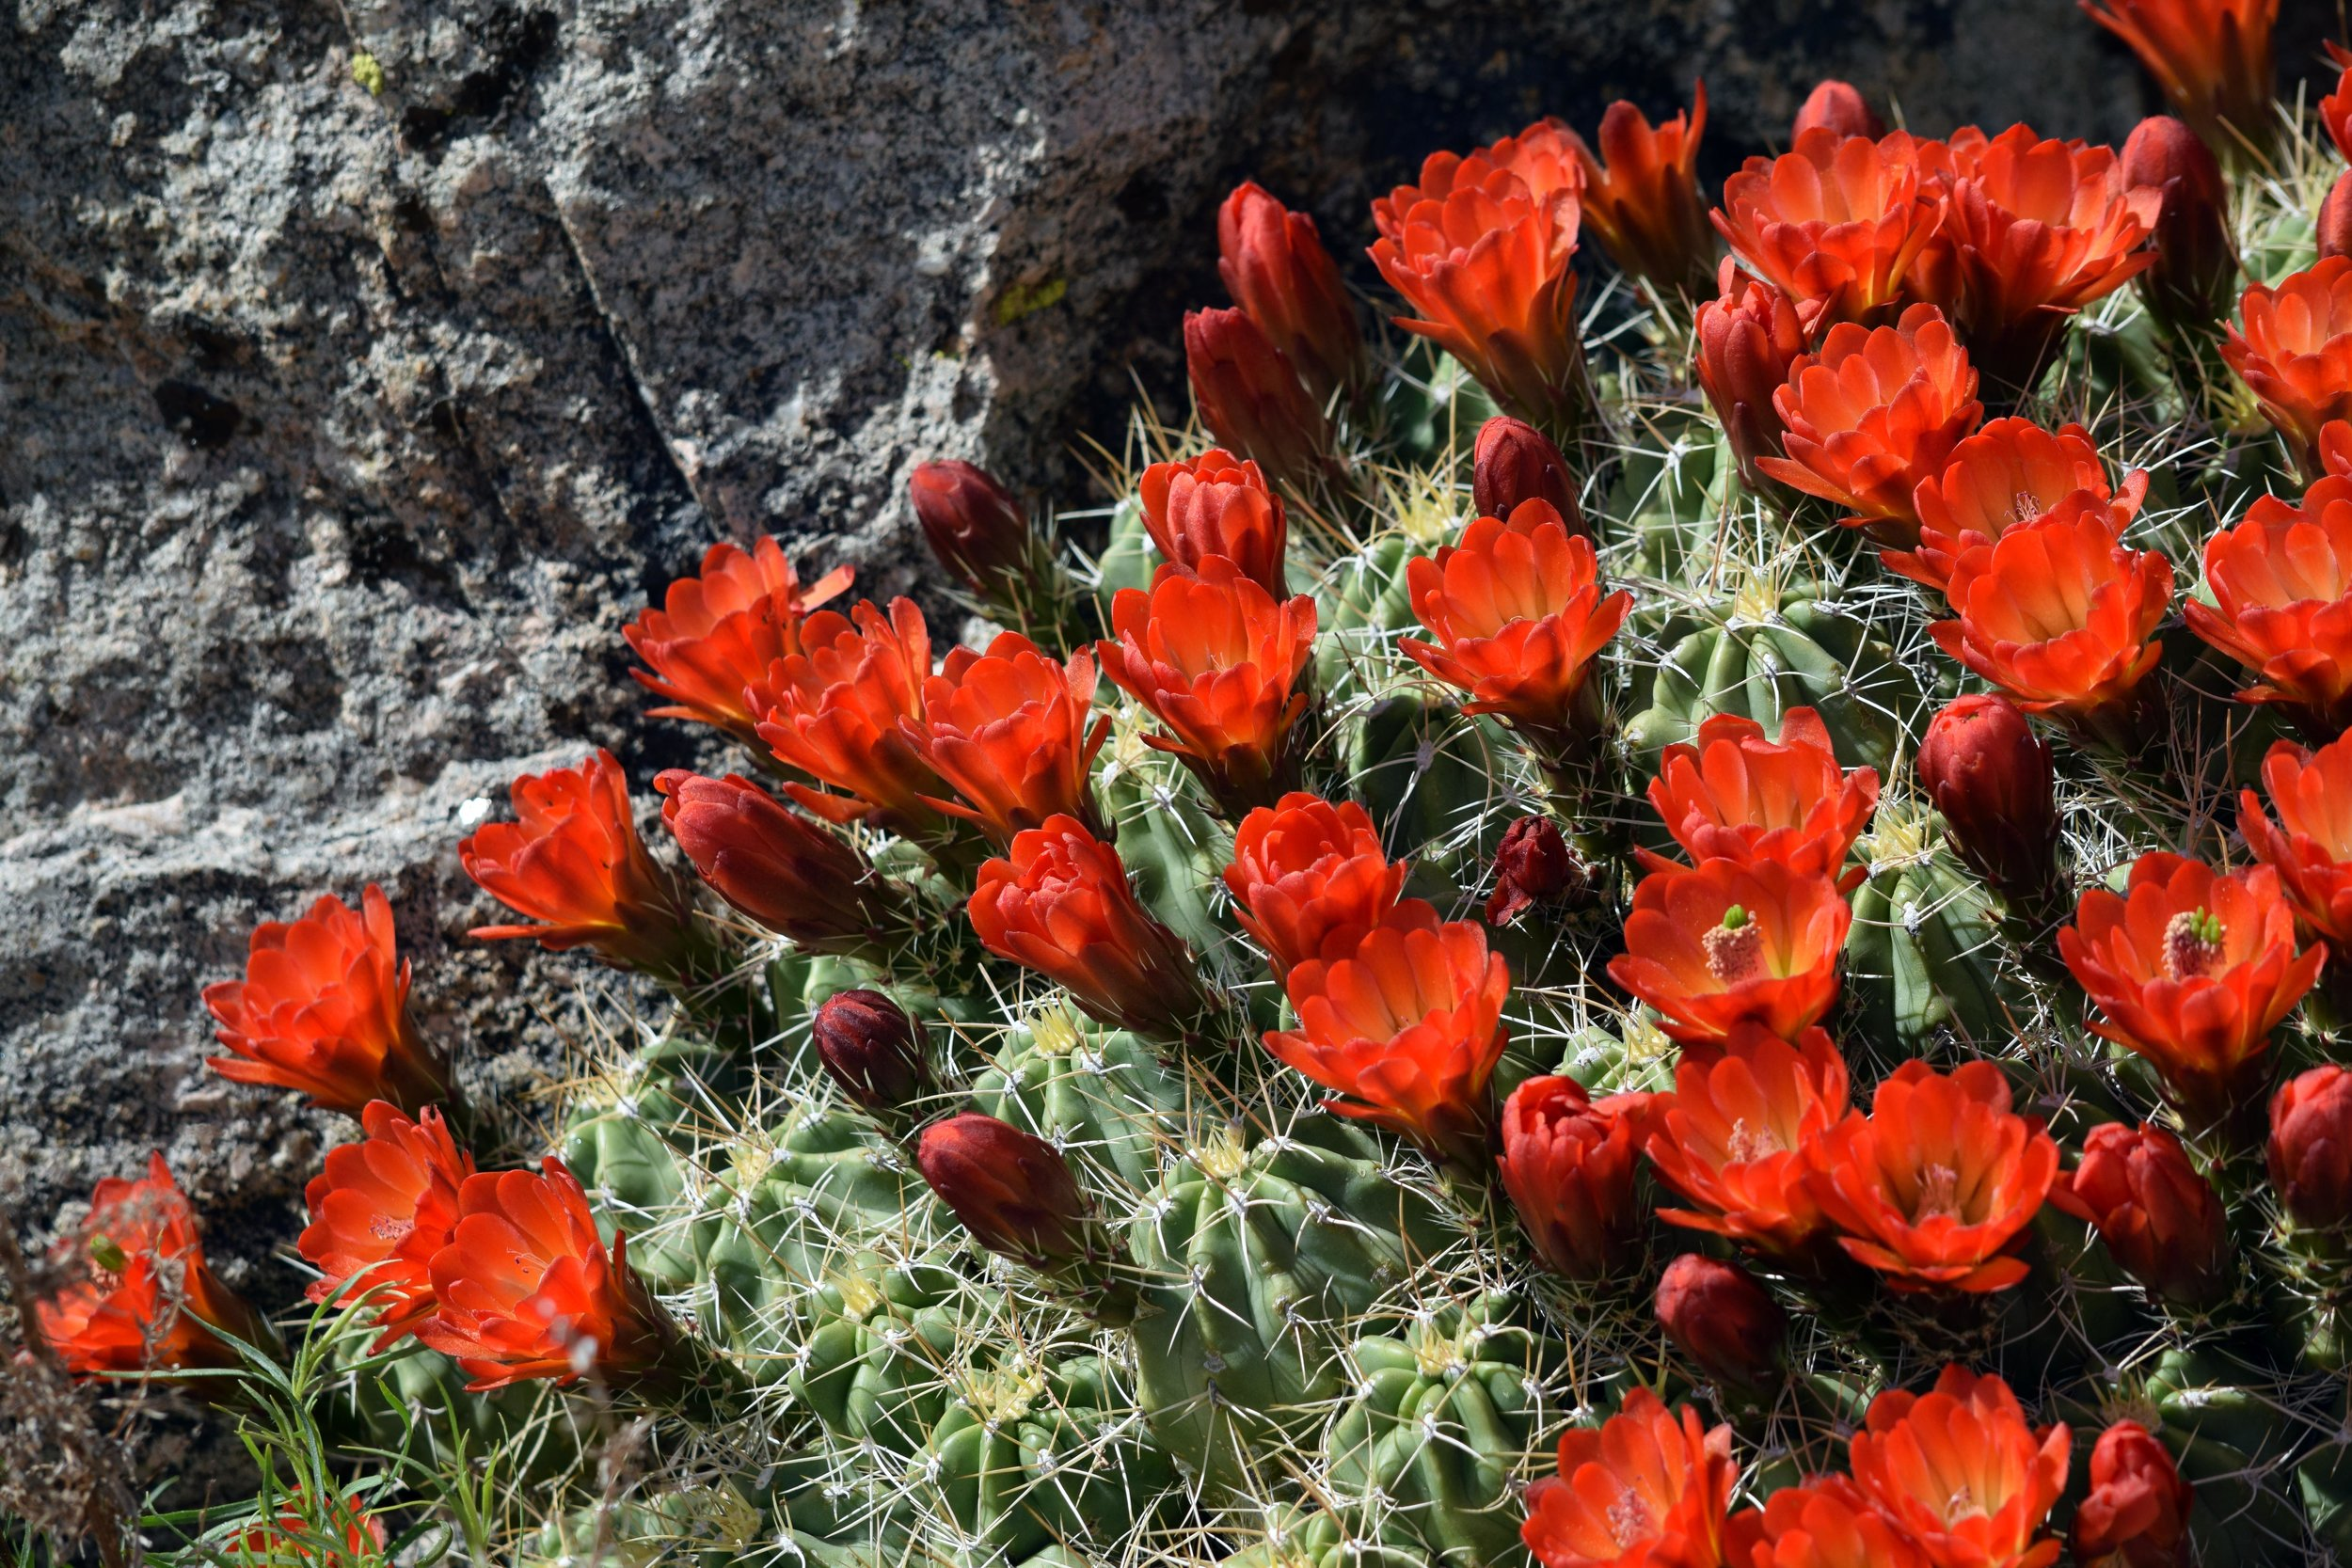 Mojave Mound Cactus - Photo by Tim Giller